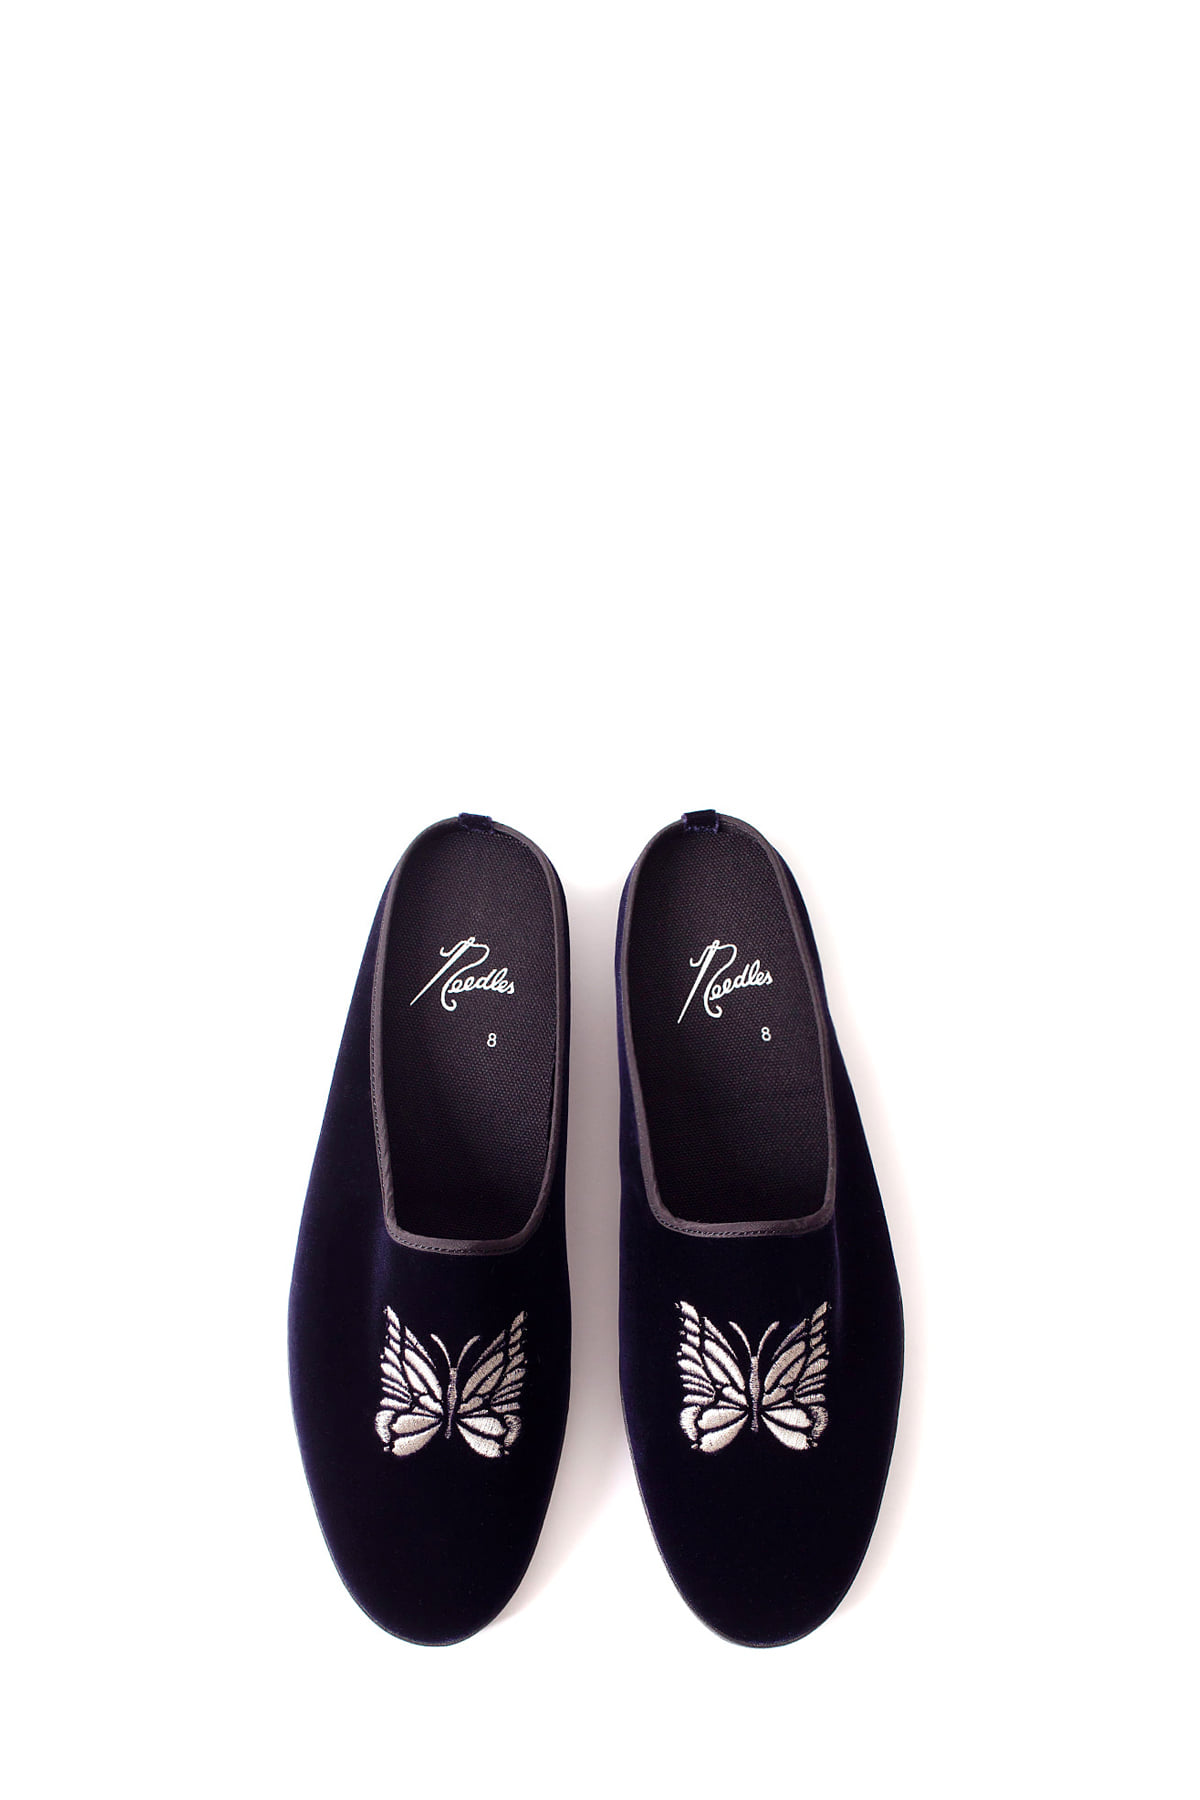 NEEDLES : Papillon Emb (Navy)